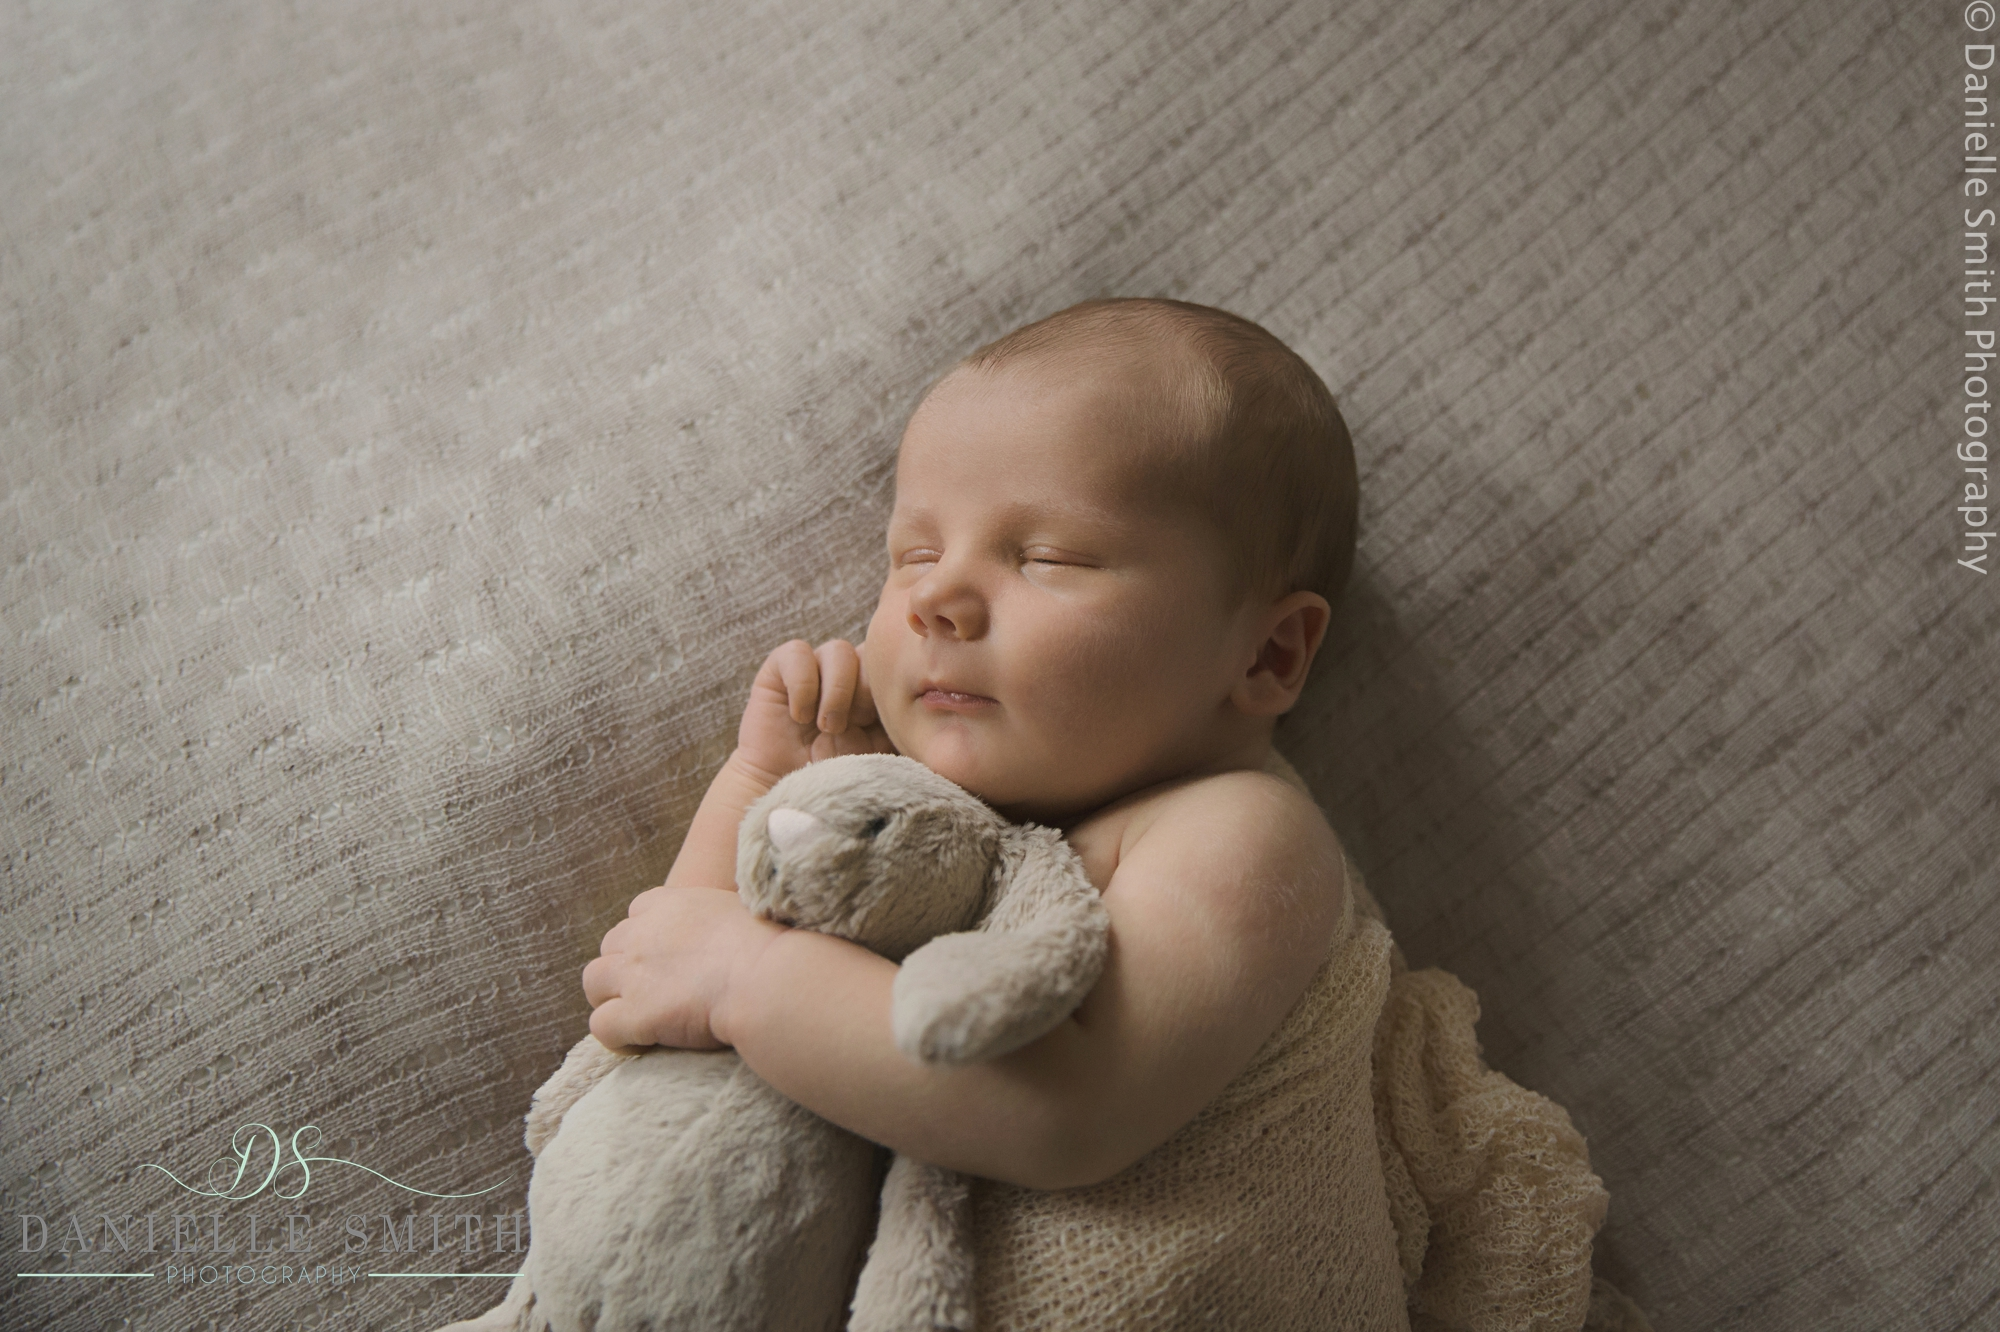 newborn photography essex-reggie 1.jpg